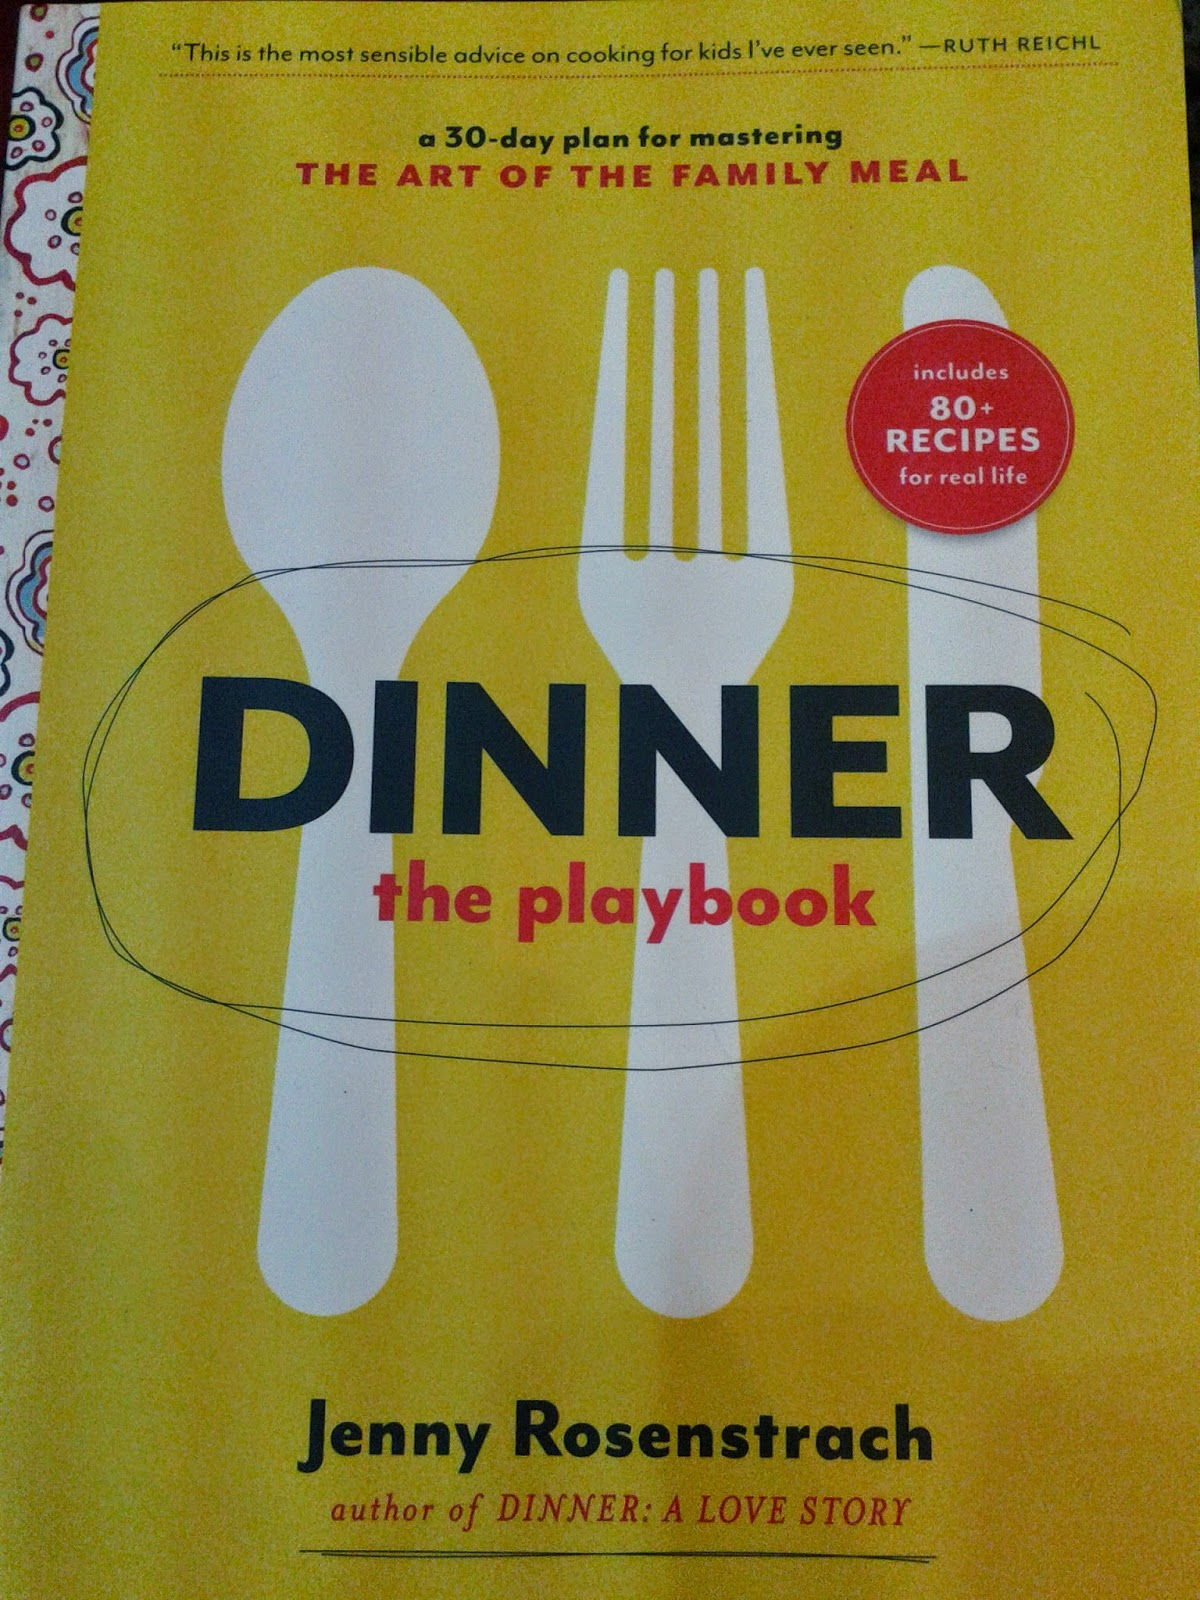 Dinner the playbook, Jenny Rosenstrach